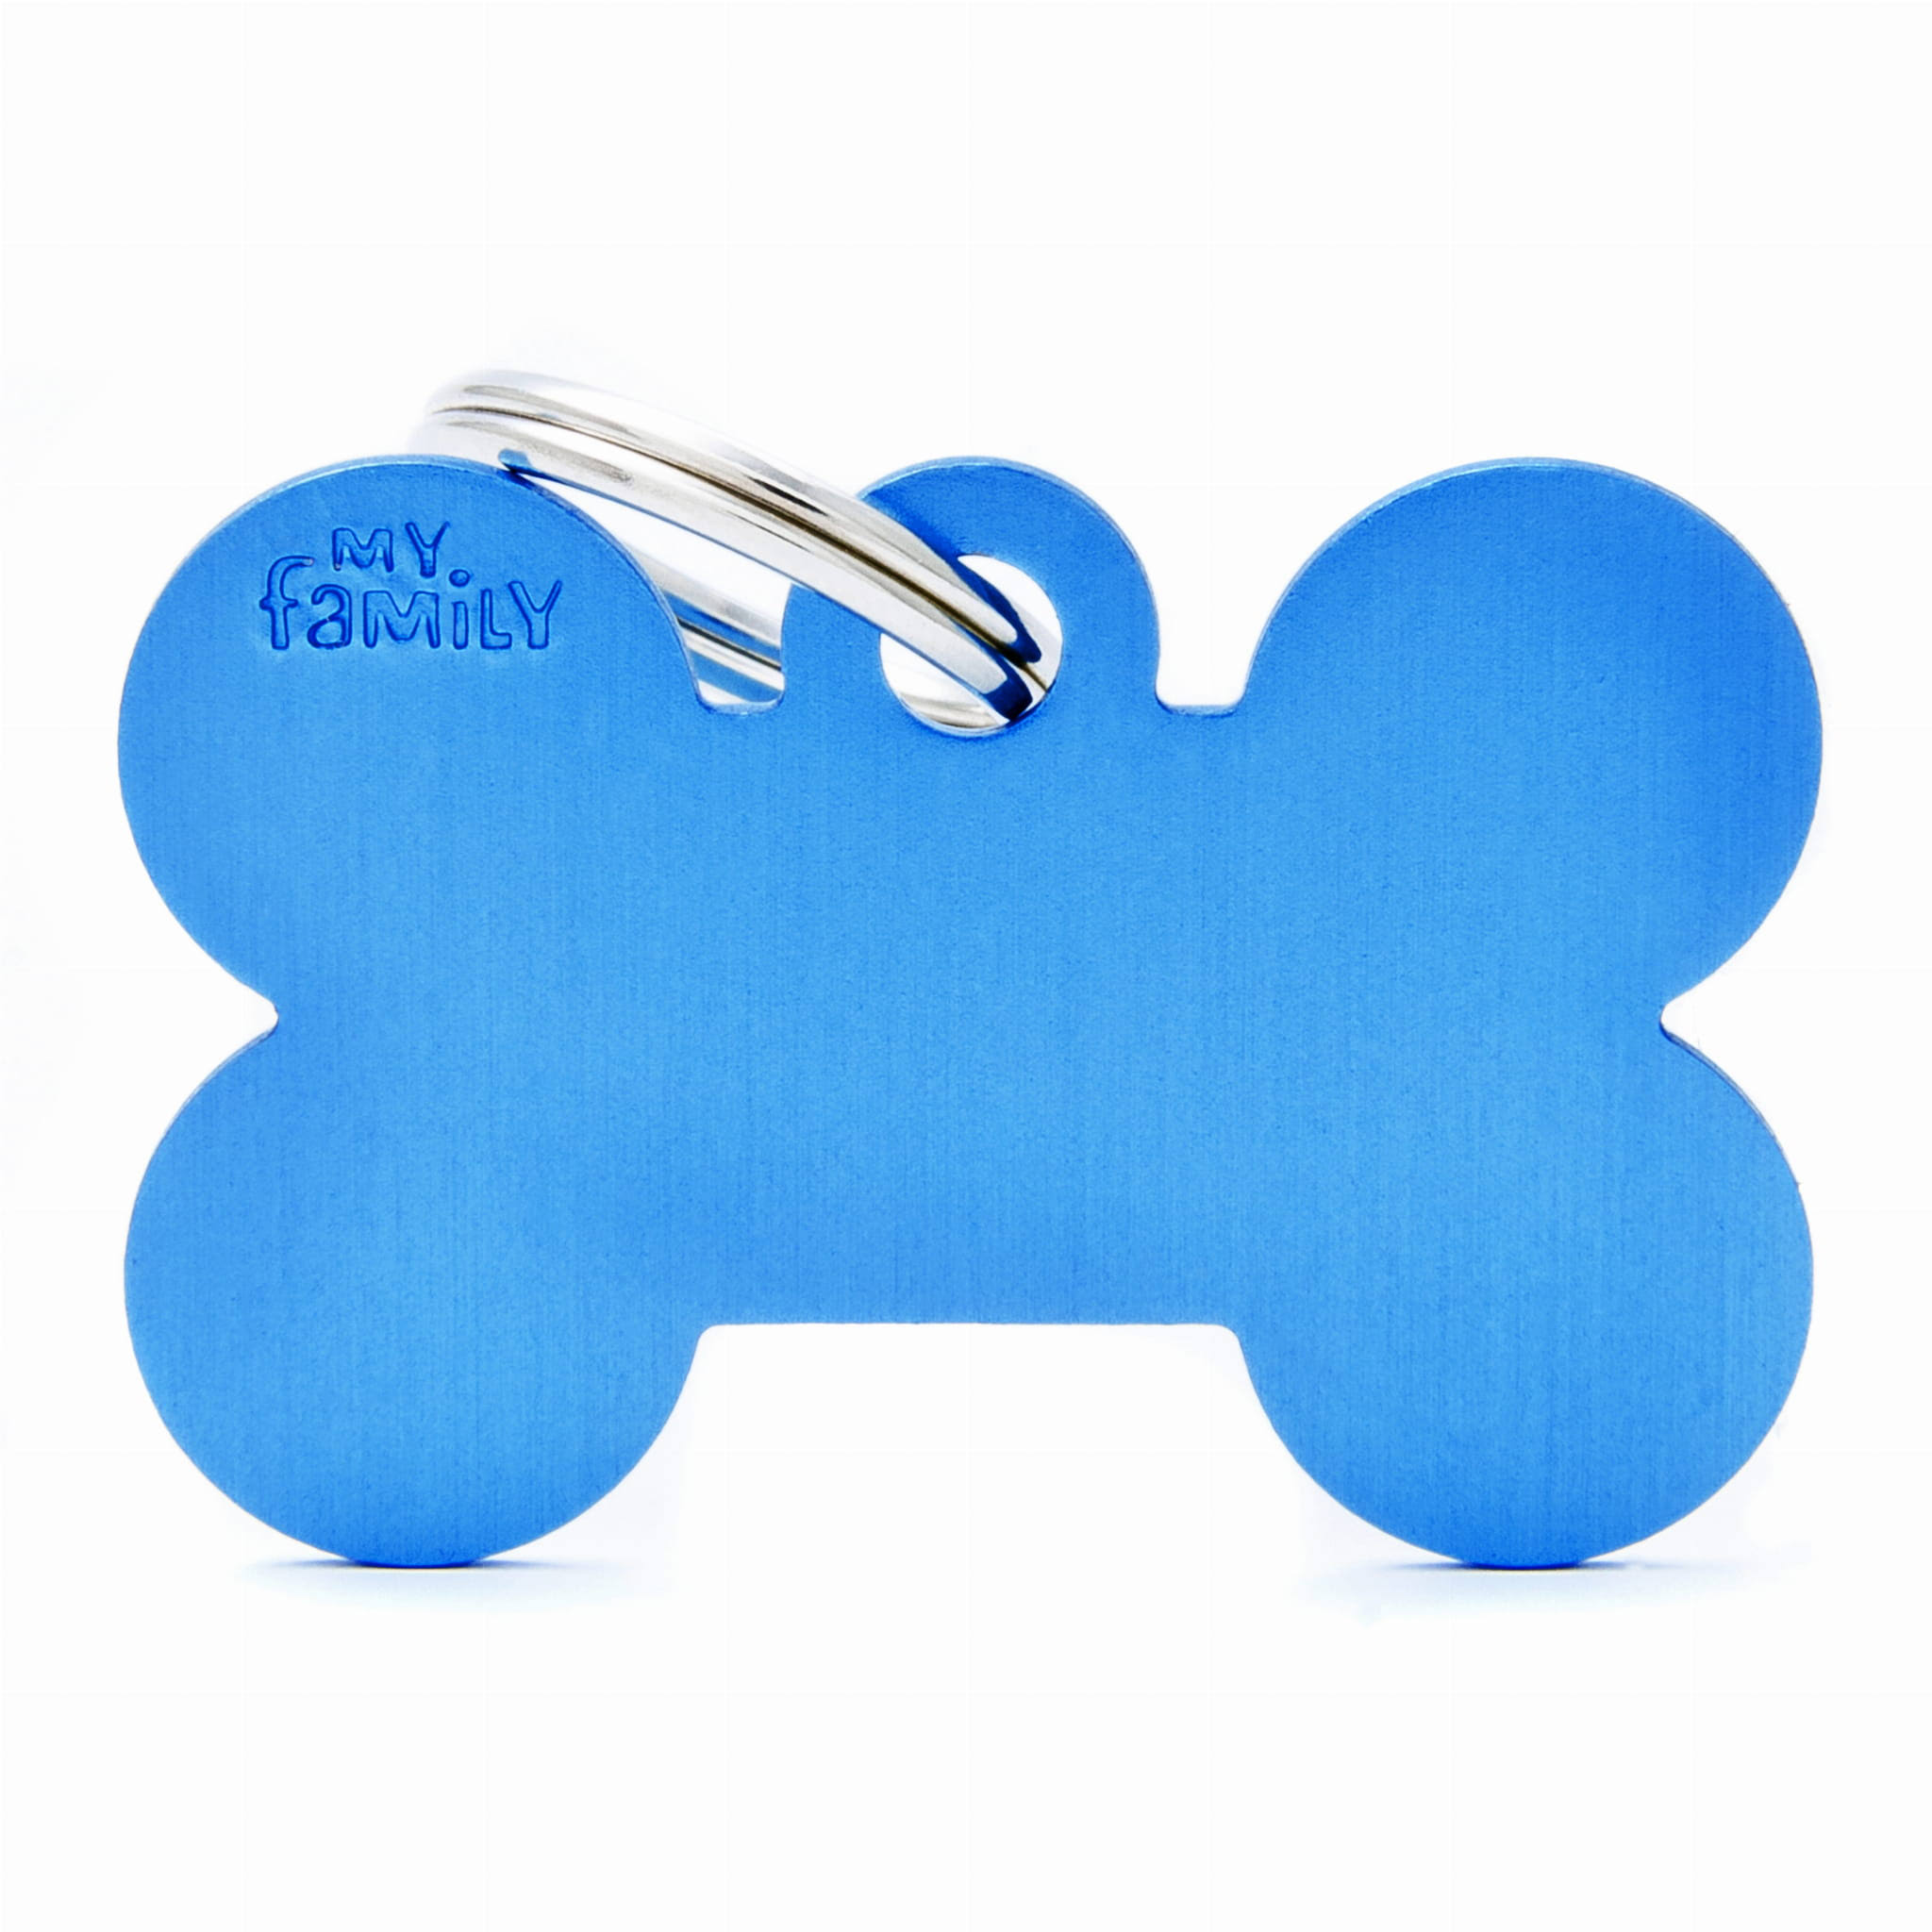 My Family Pet ID Tag - Large, Blue Bone